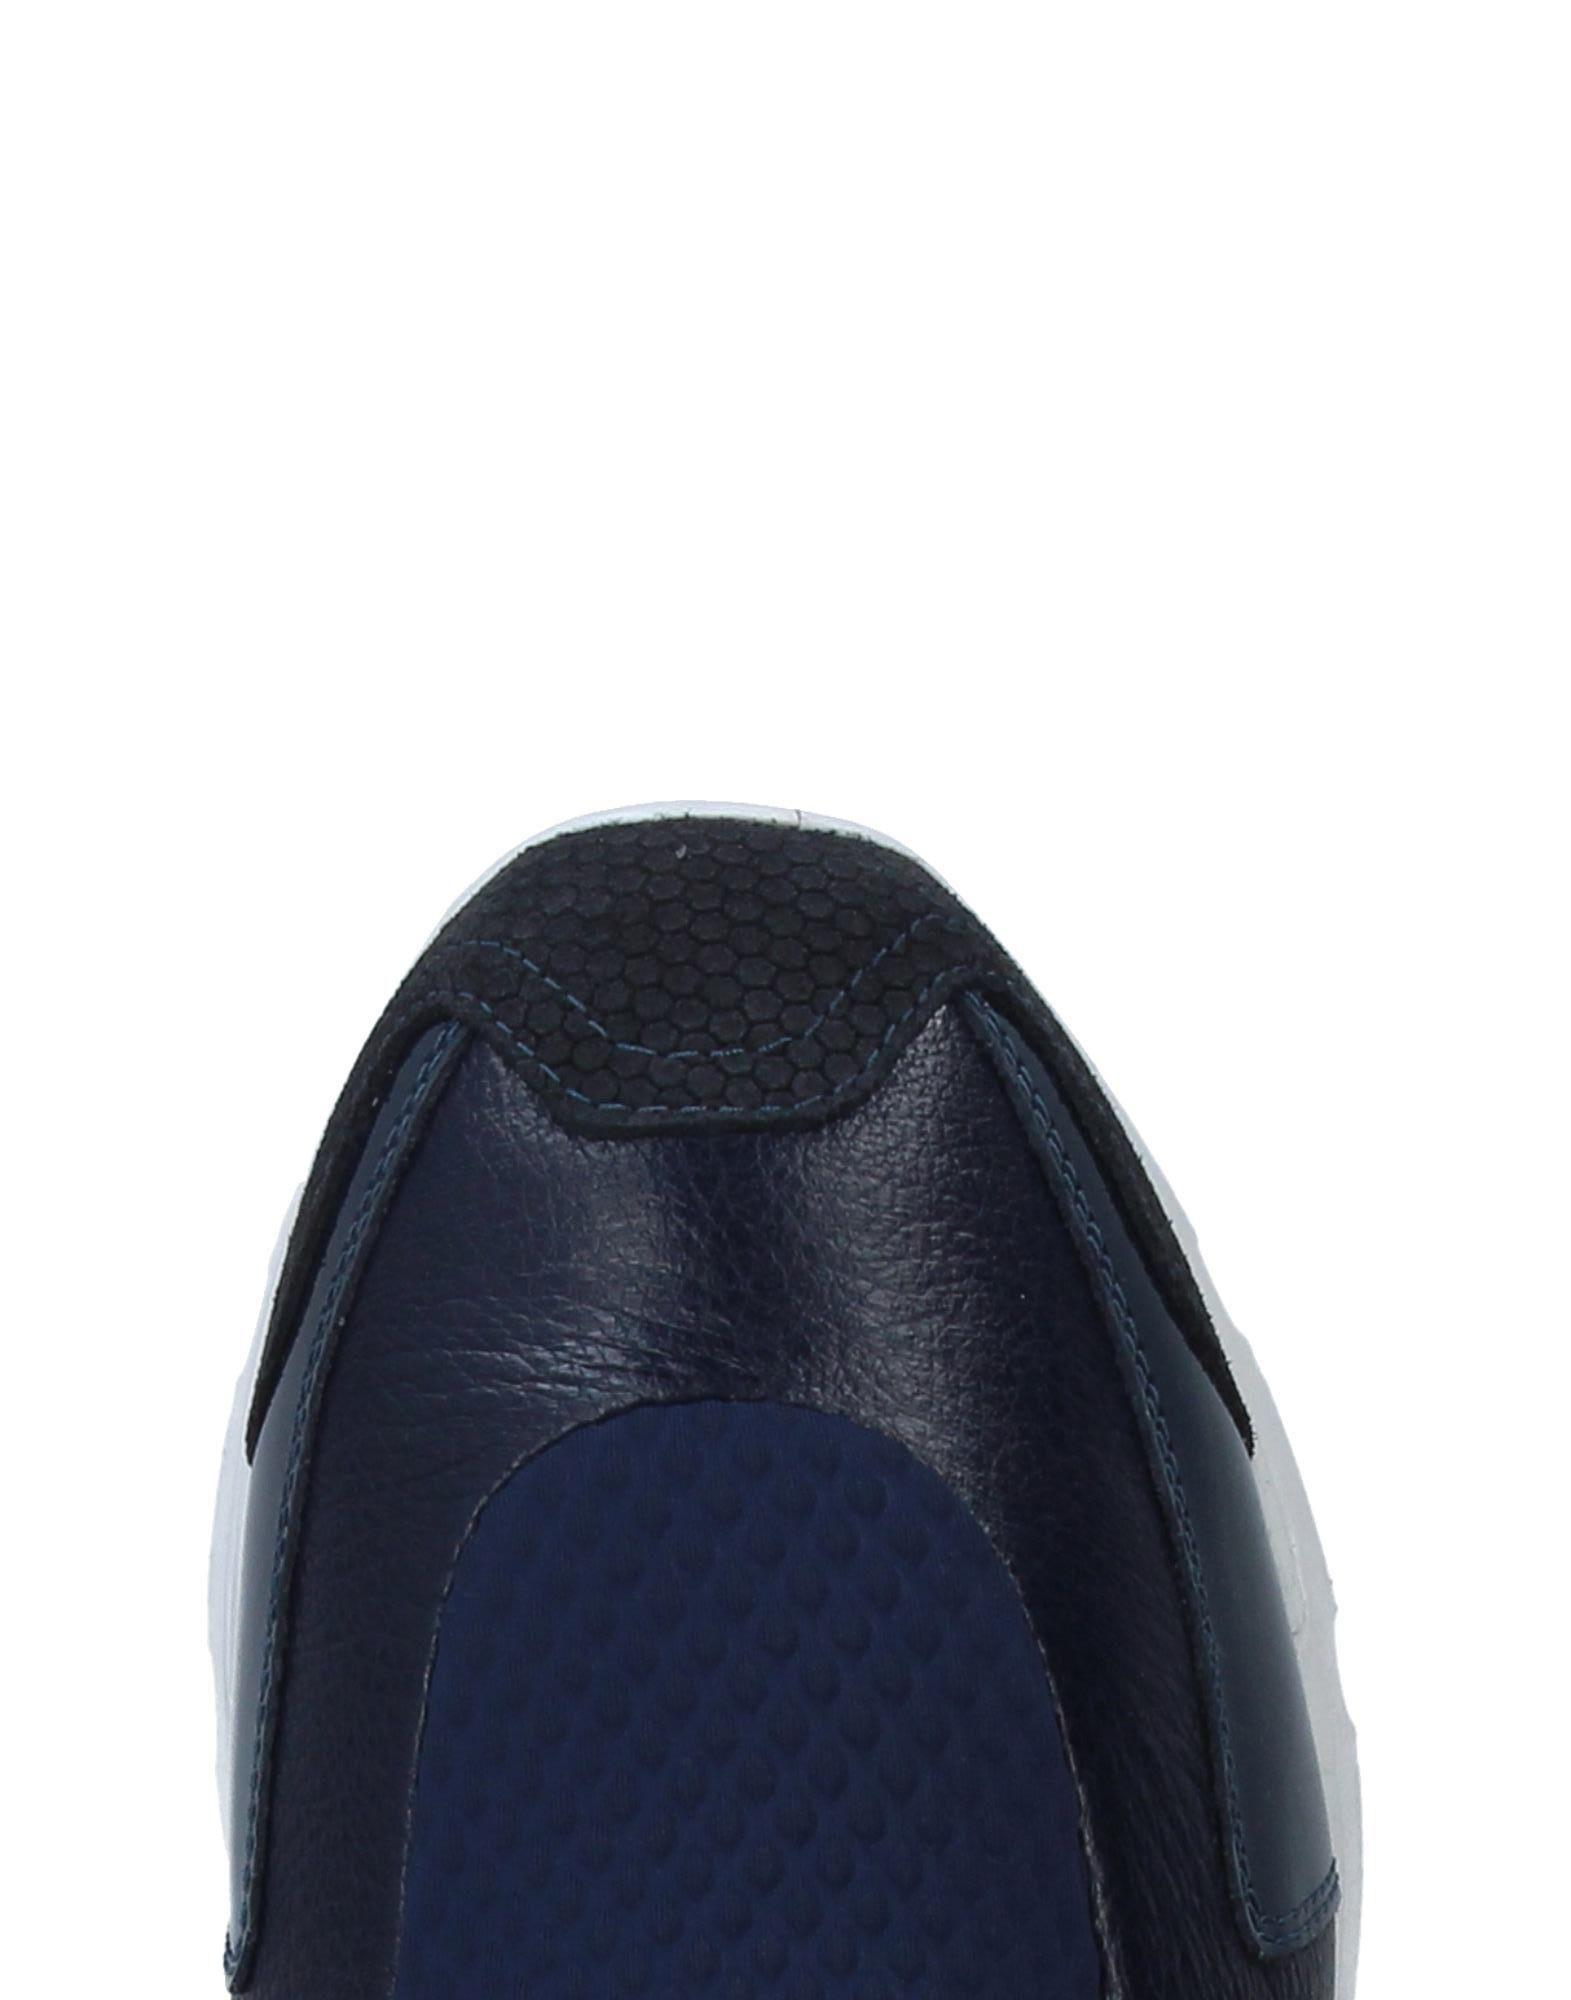 MM6 by Maison Martin Margiela Leather Low-tops & Sneakers in Dark Blue (Blue)